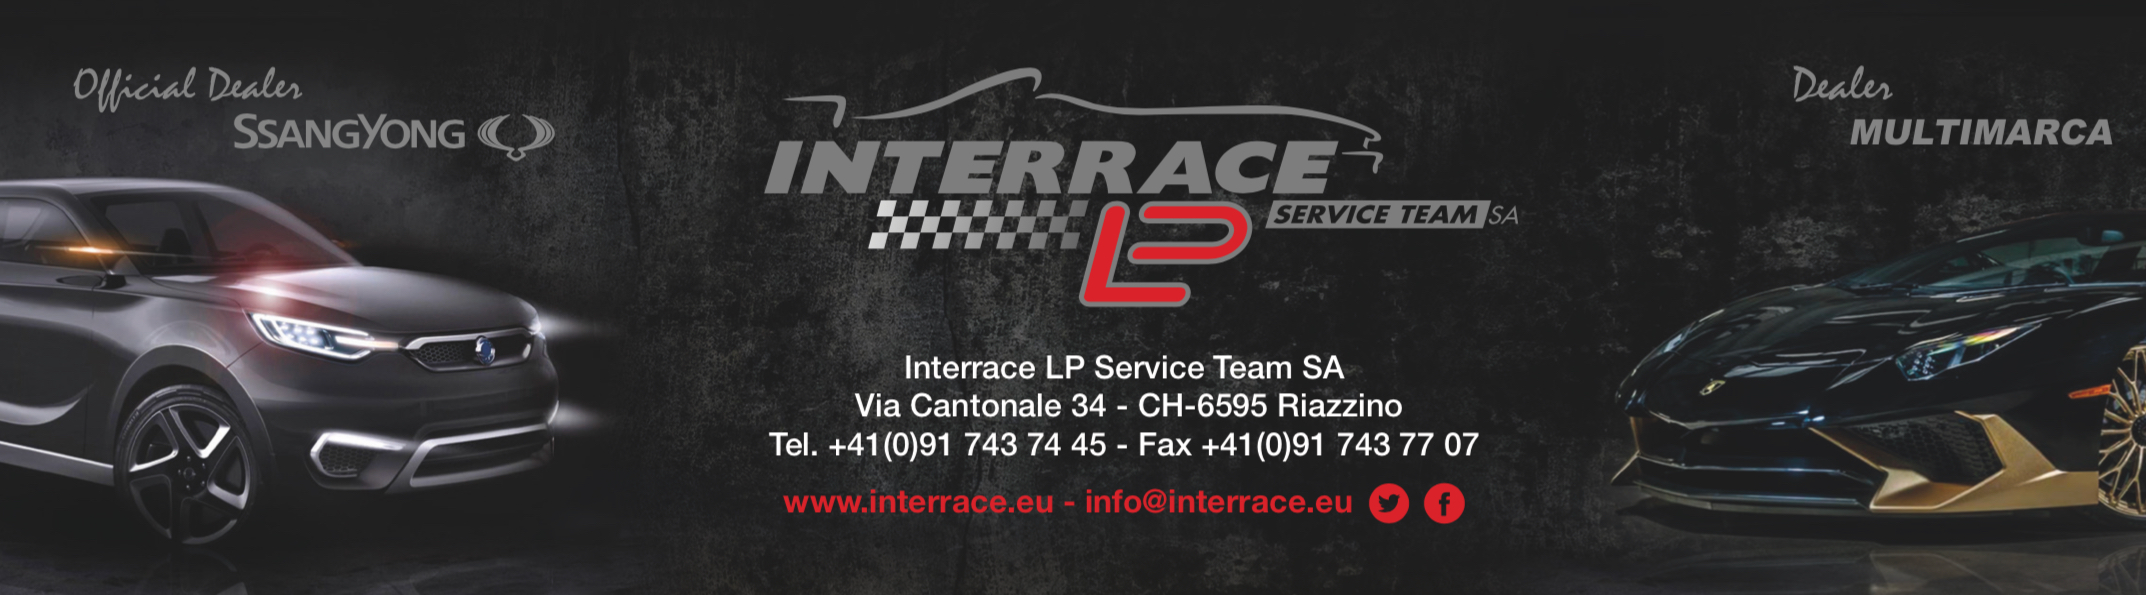 Interrace LP Service Team SA